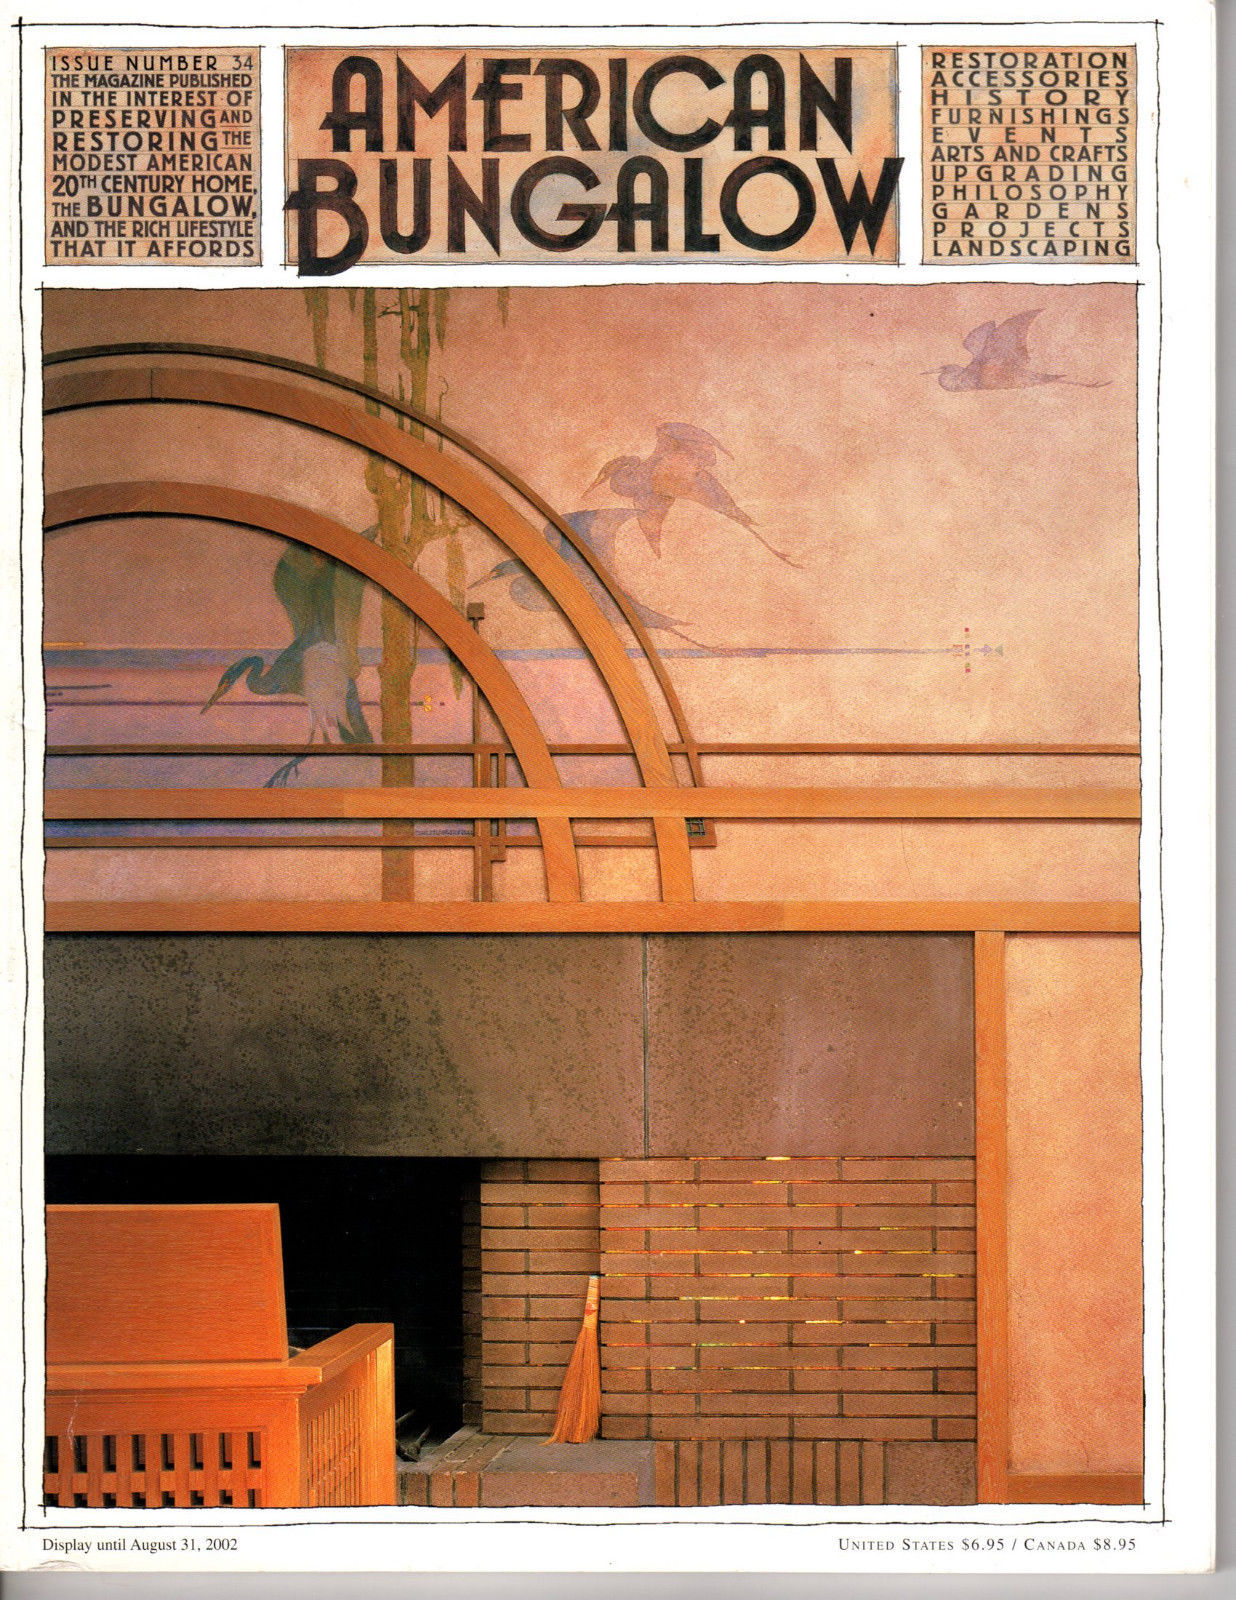 Primary image for AMERICAN BUNGALOW Magazine No. 34 <> Summer 2002 <> Arts & Crafts Ar